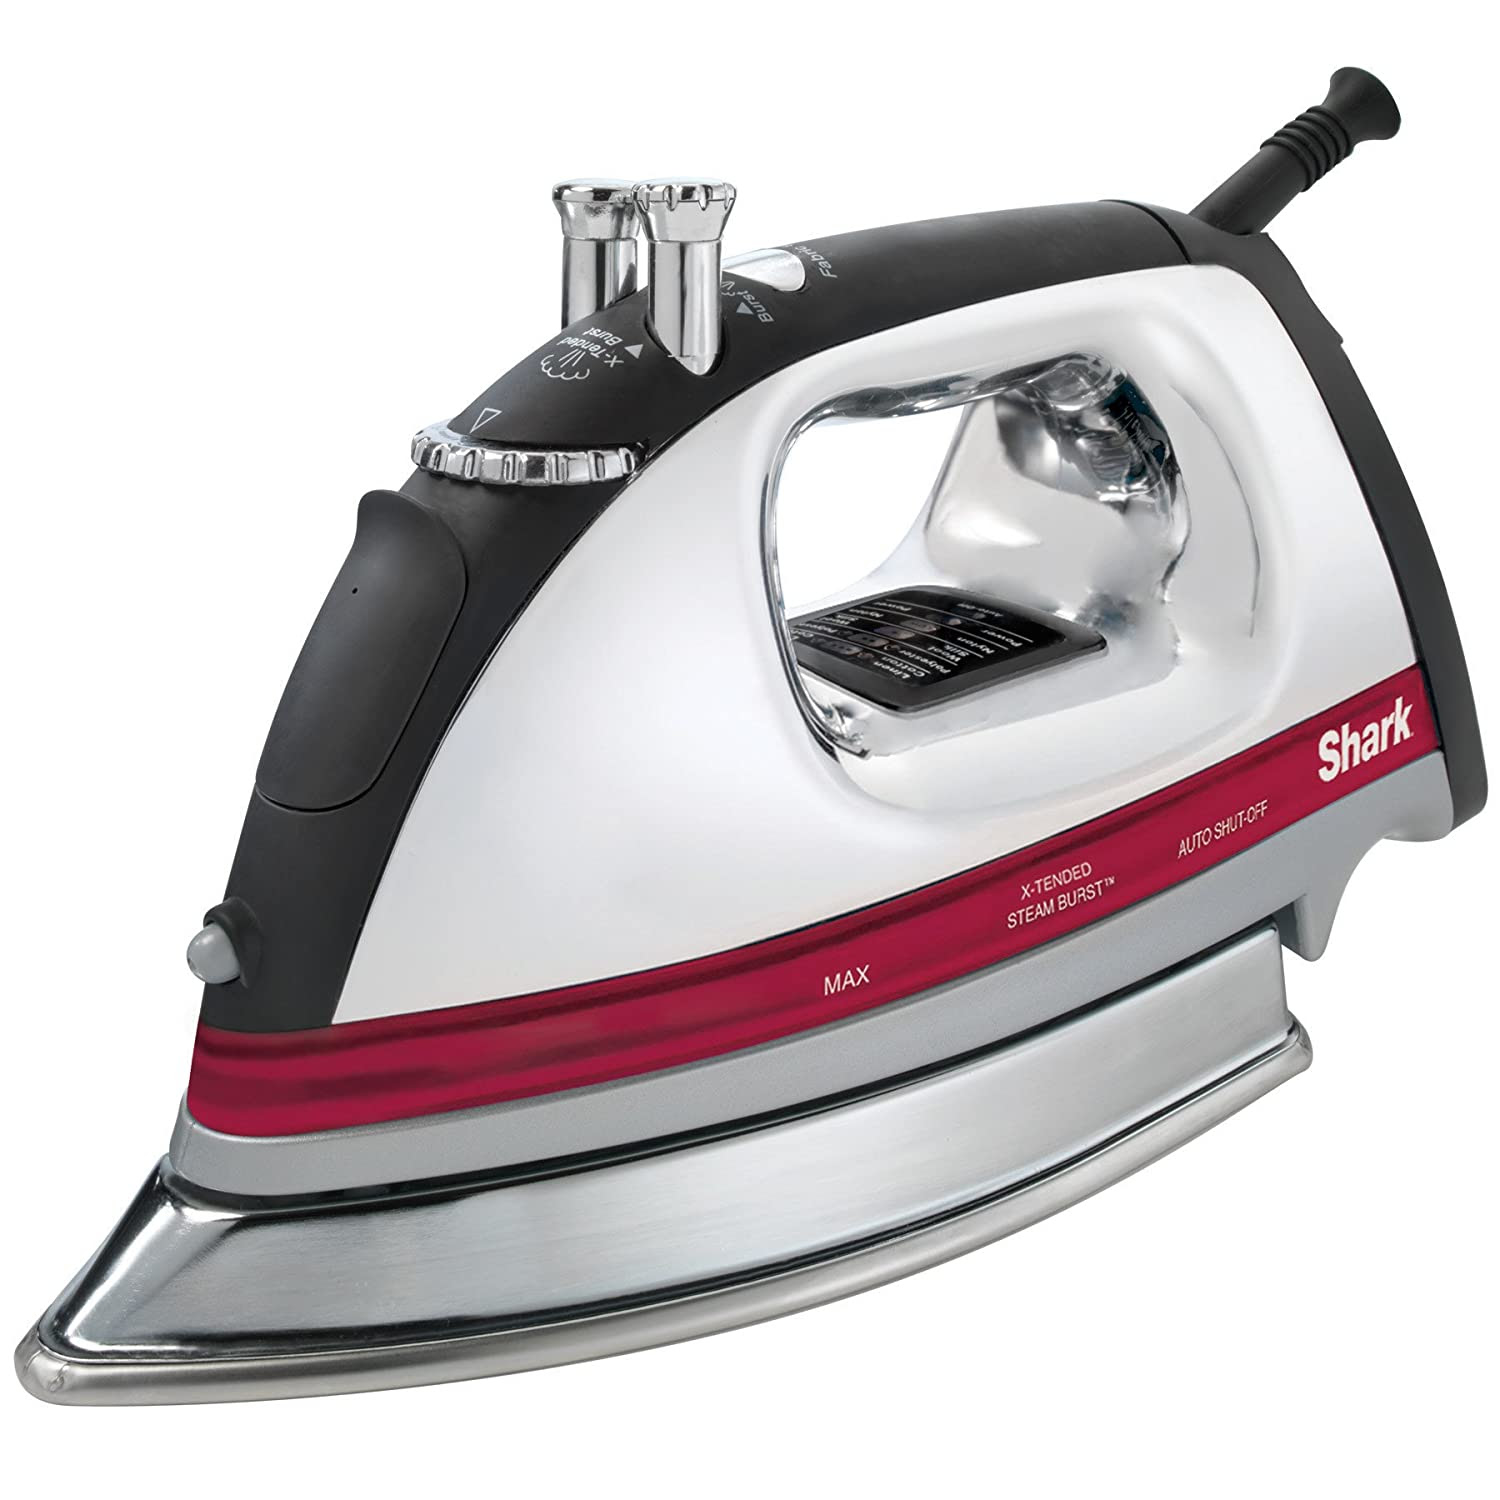 Top 5 Best Steam Iron in India [2018] - Review and Comparison